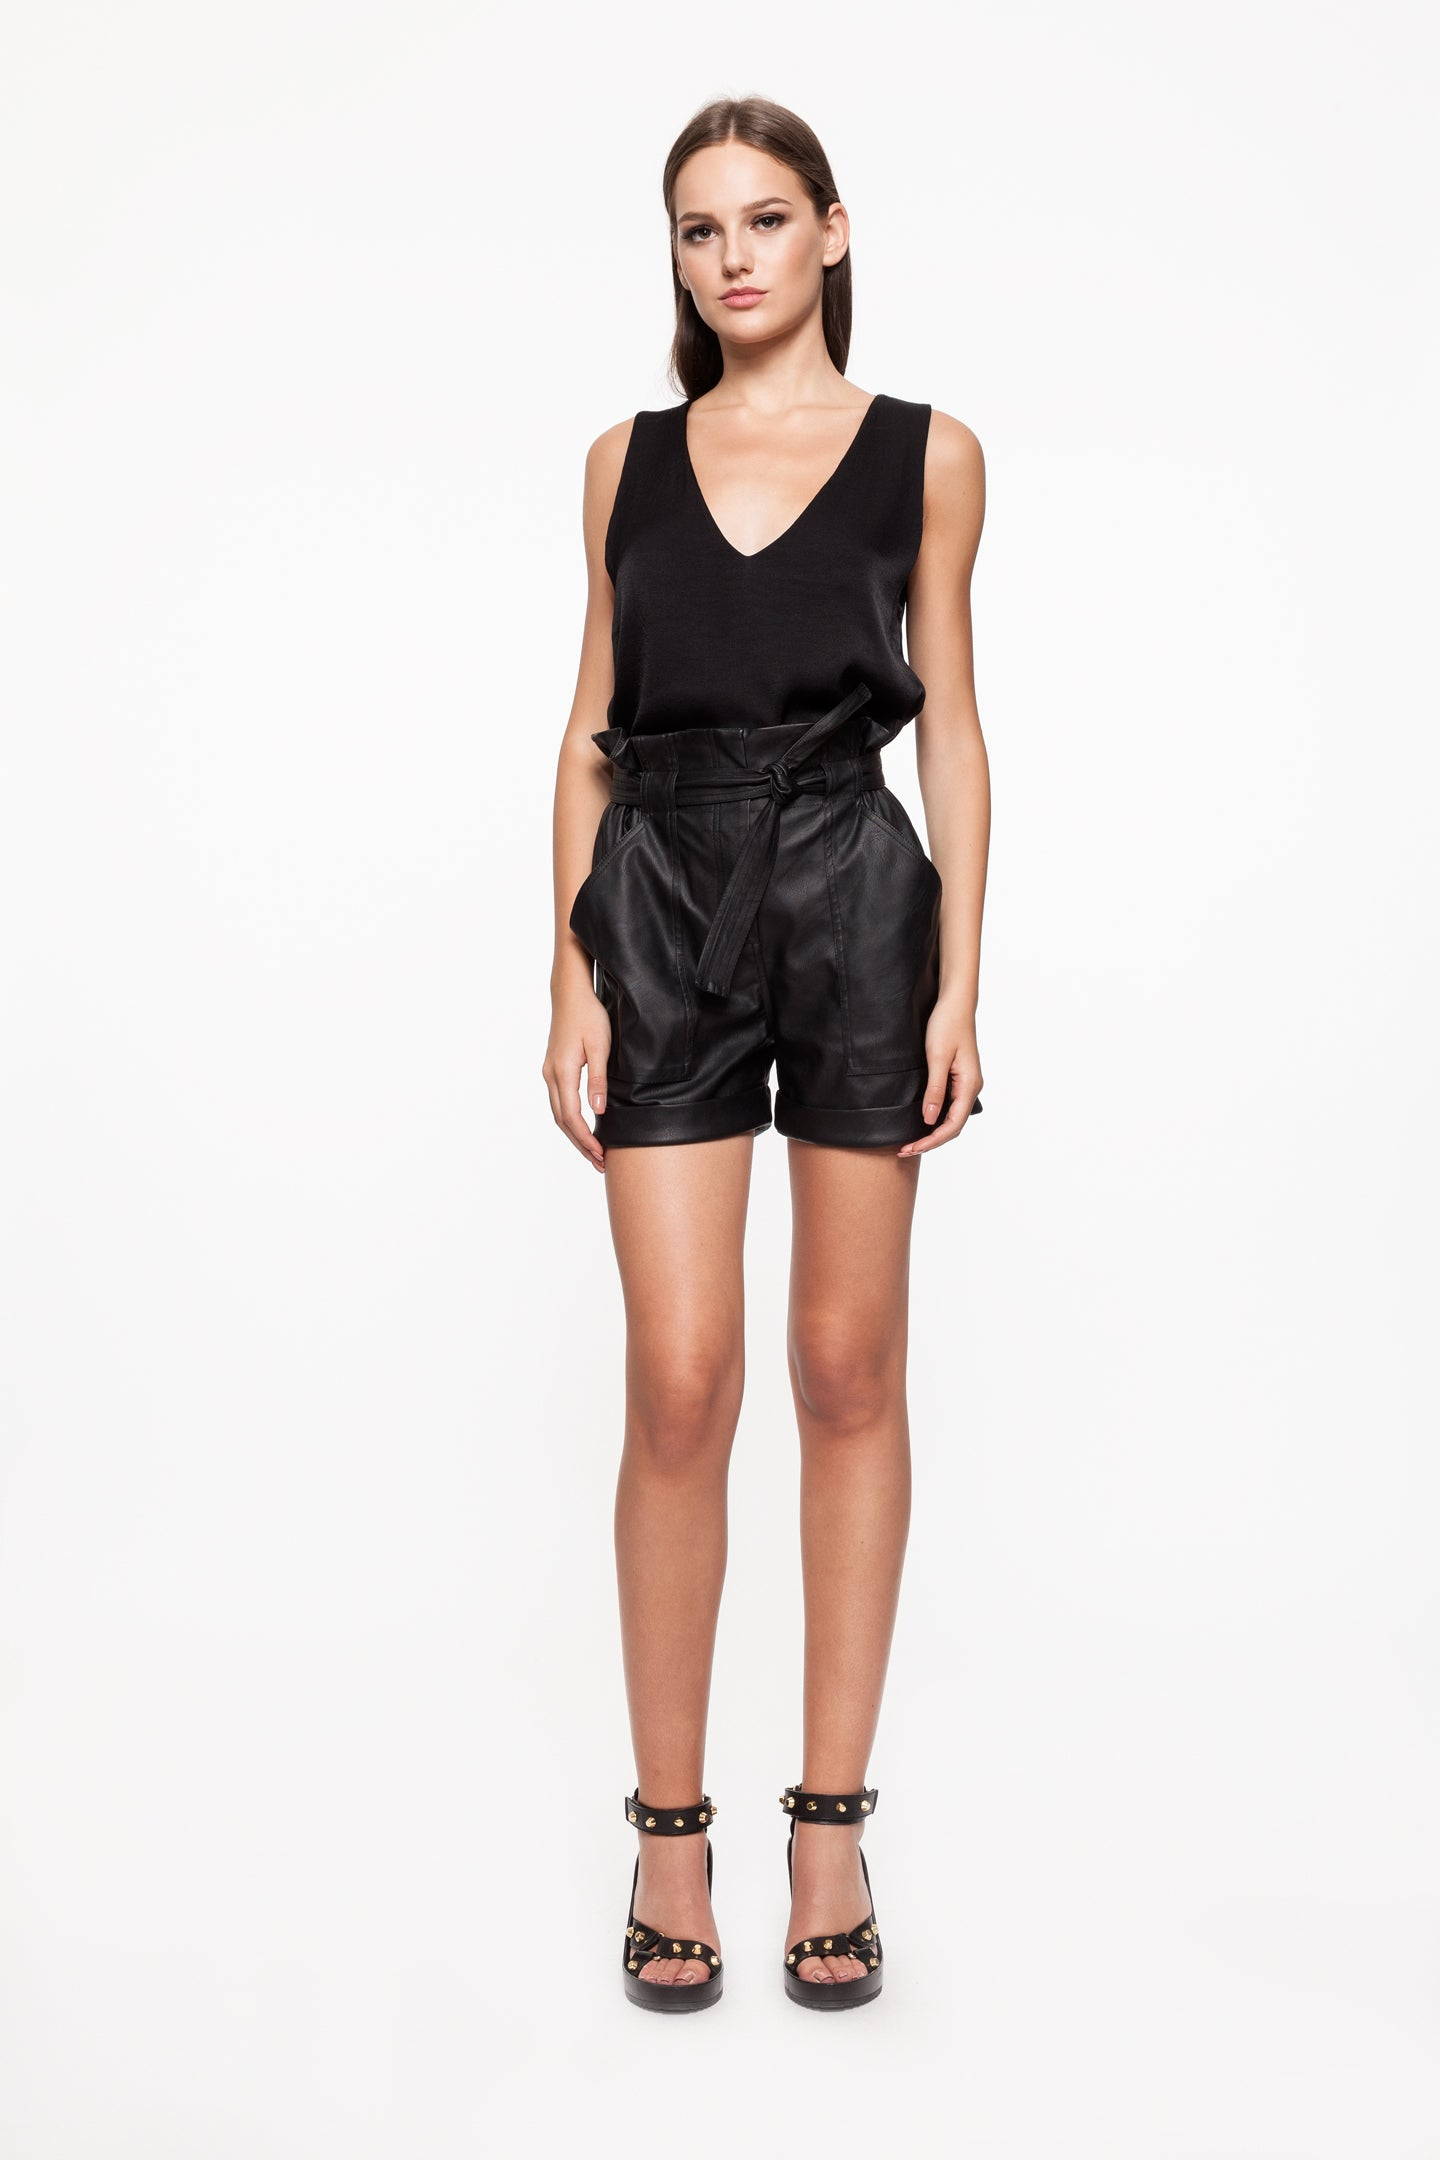 ROSY Black Short Pants